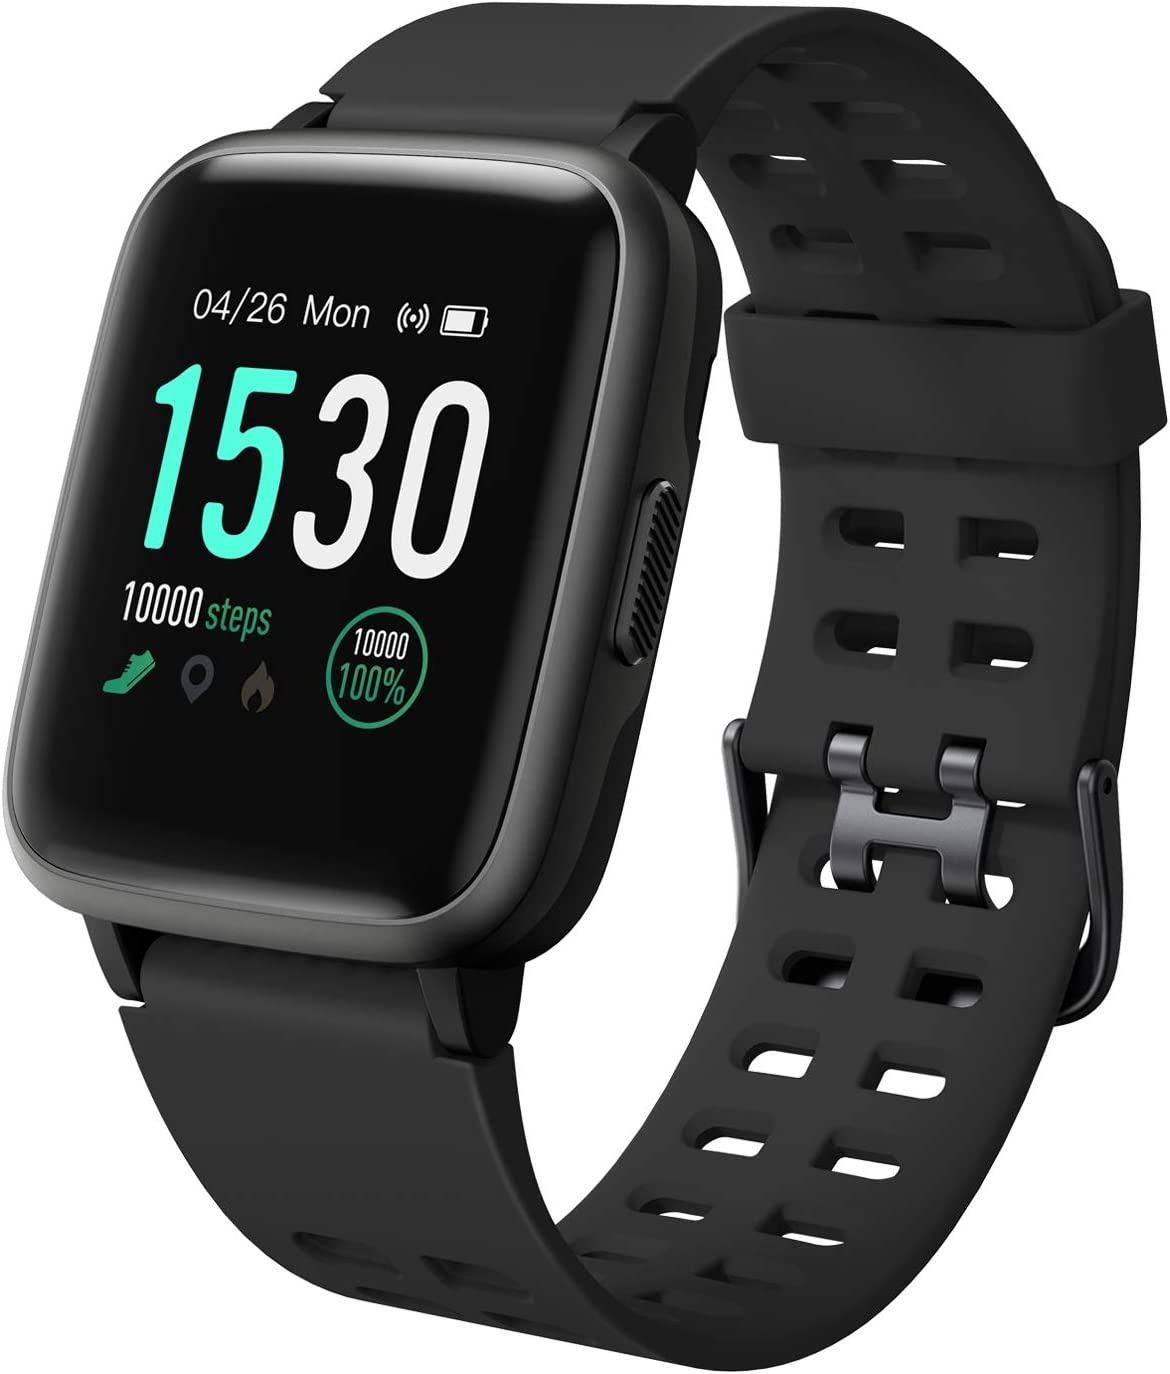 Amazon.com: LETSCOM Fitness Tracker con monitor de ritmo ...